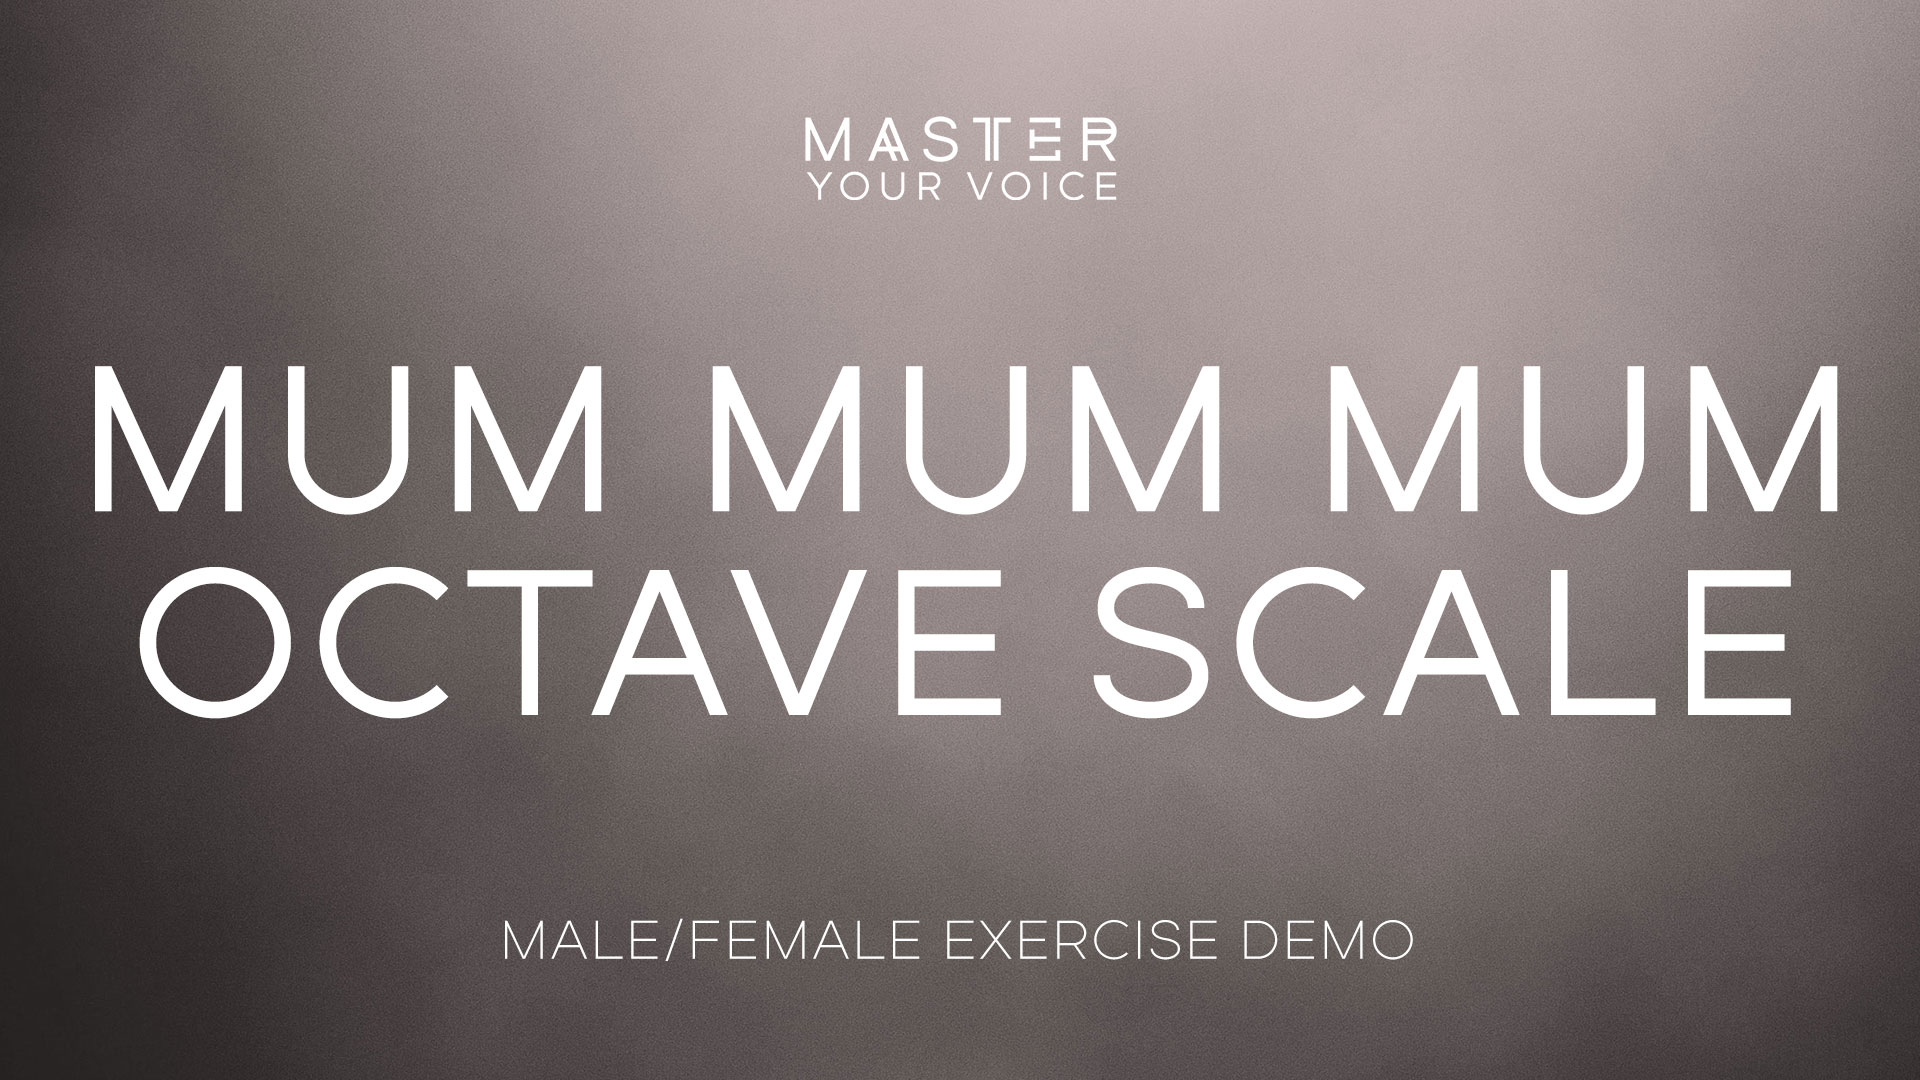 Mum Mum Mum Octave Scale Exercise Demo